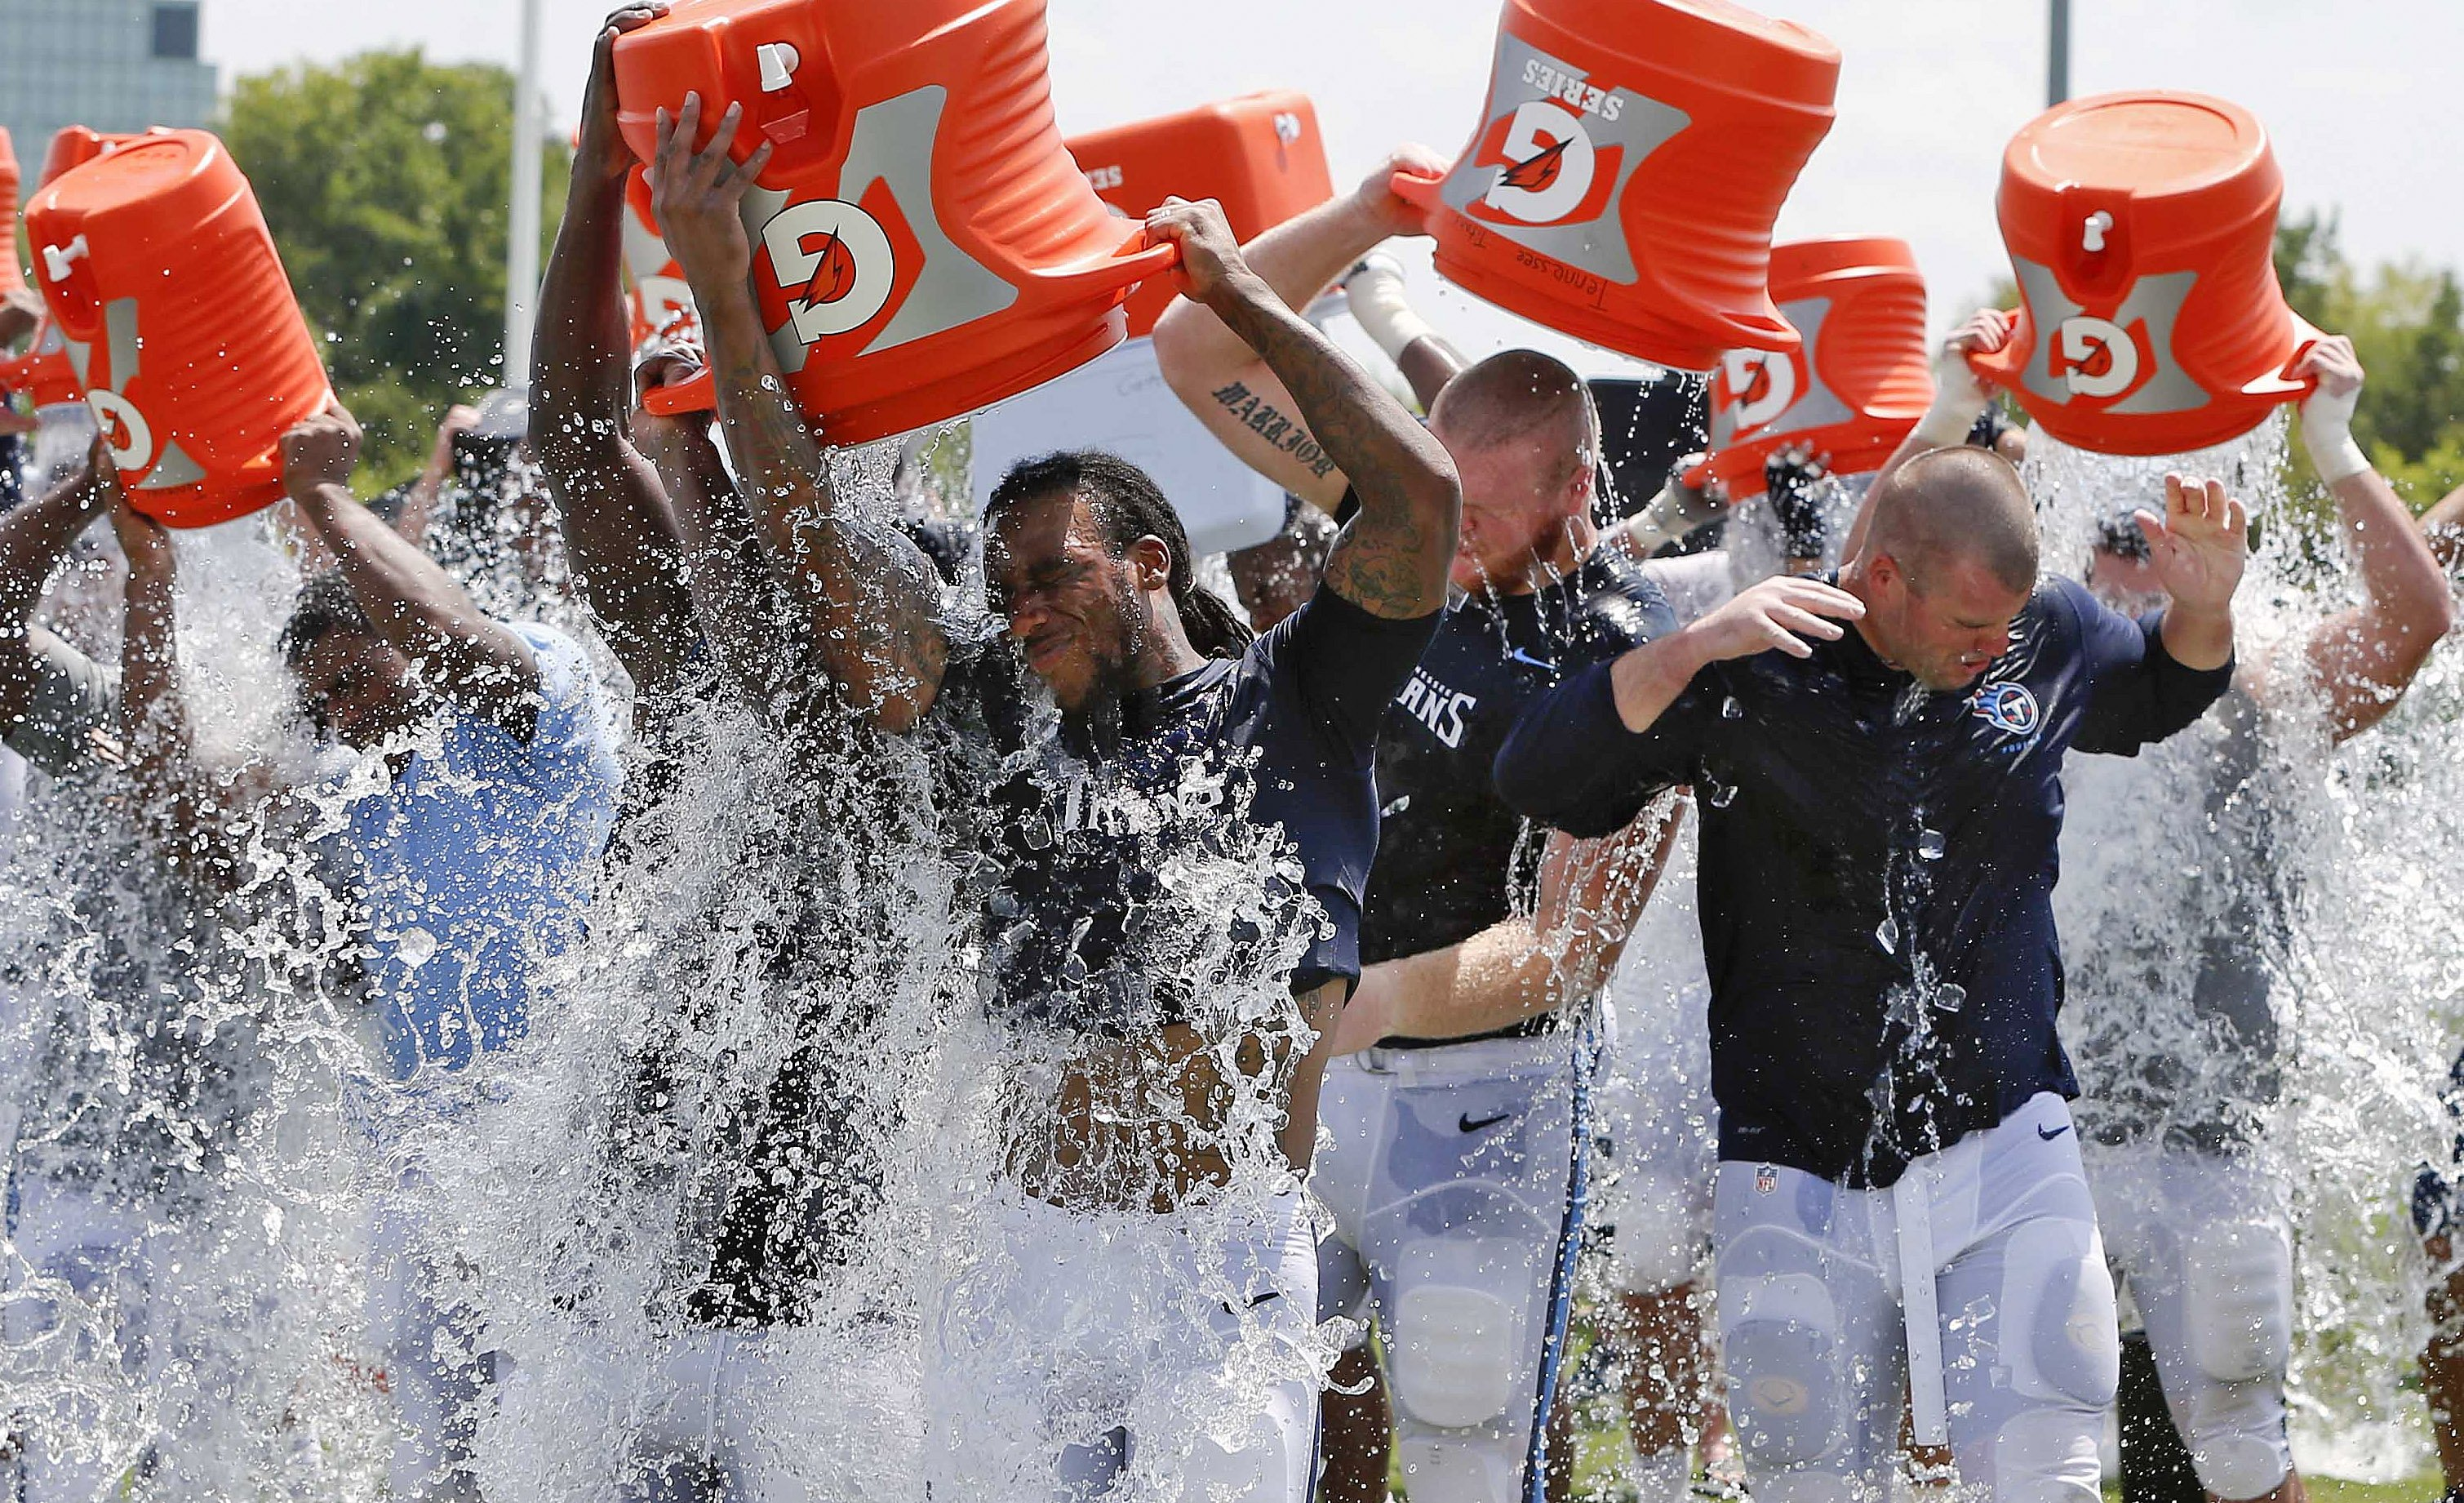 Tennessee Titans players take part in the ALS Ice Bucket Challenge and pour ice water over their heads after NFL football practice Wednesday, Aug. 20, 2014, in Nashville, Tenn.